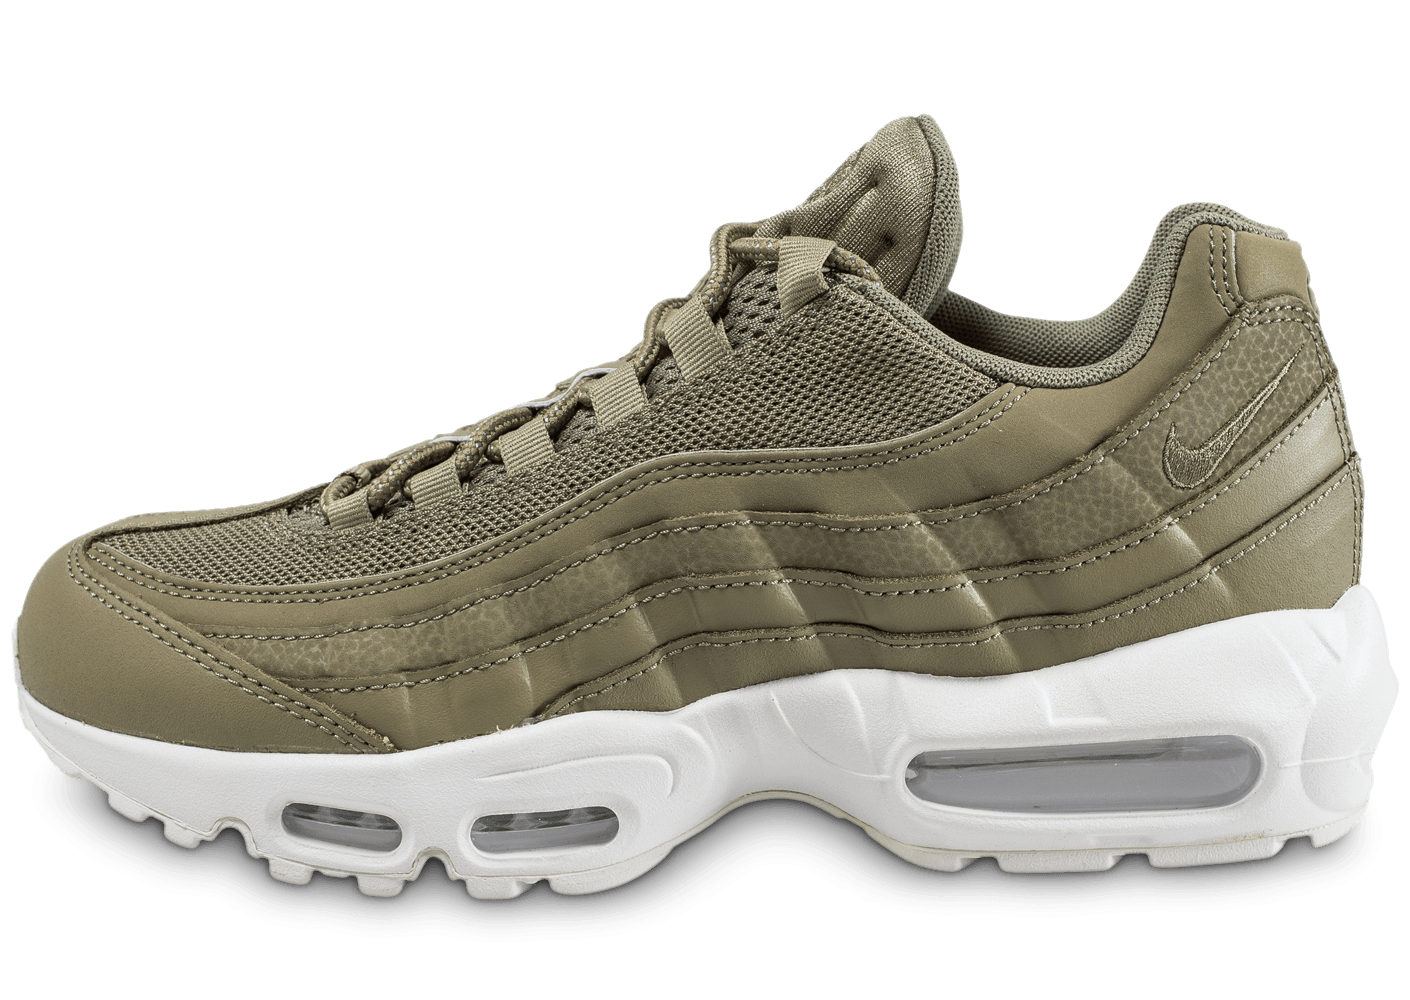 new nike air max 95 essential vert pale